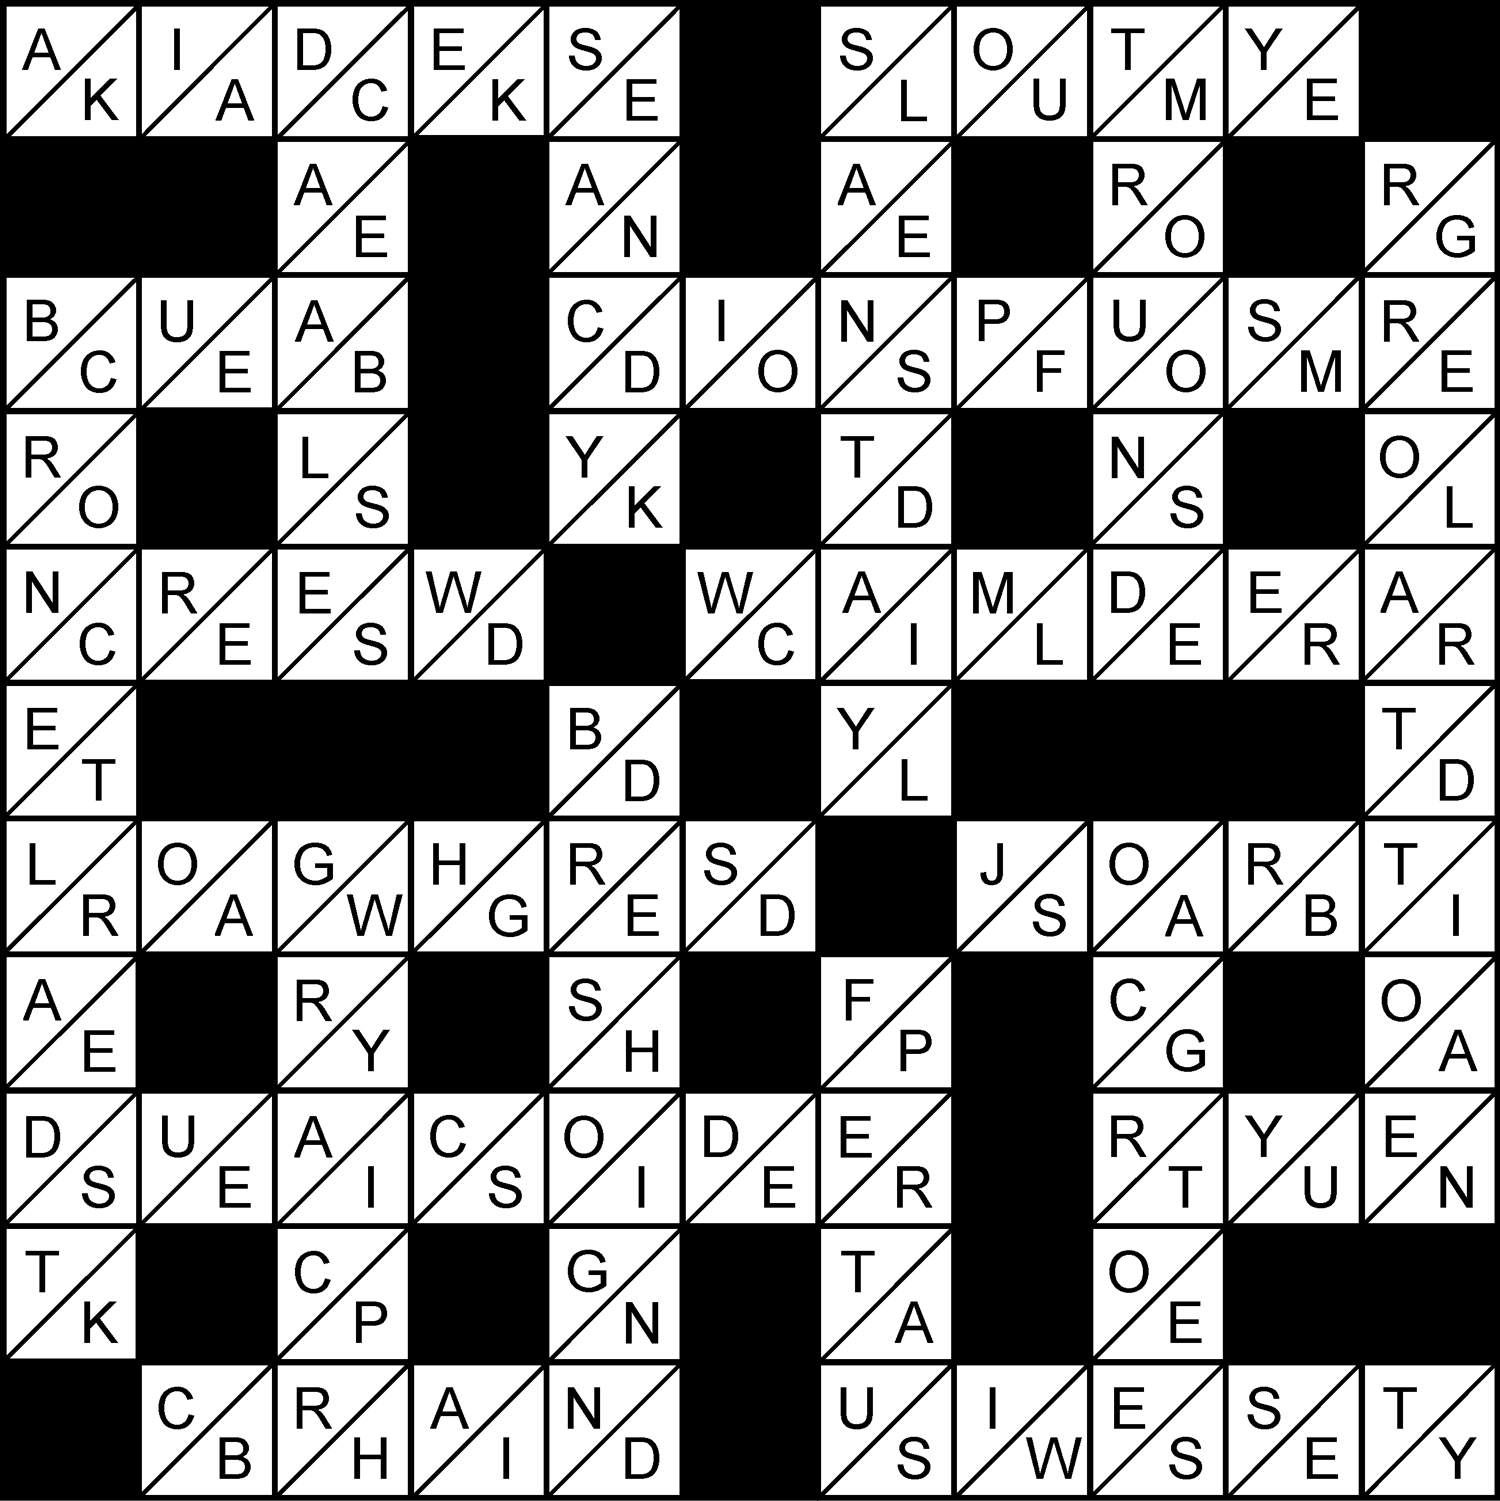 Work out which letter to delete from each square to make a word and complete the puzzle.  Available daily.  ©The Puzzle Company. Dist. Knight Features. All Rights Reserved.